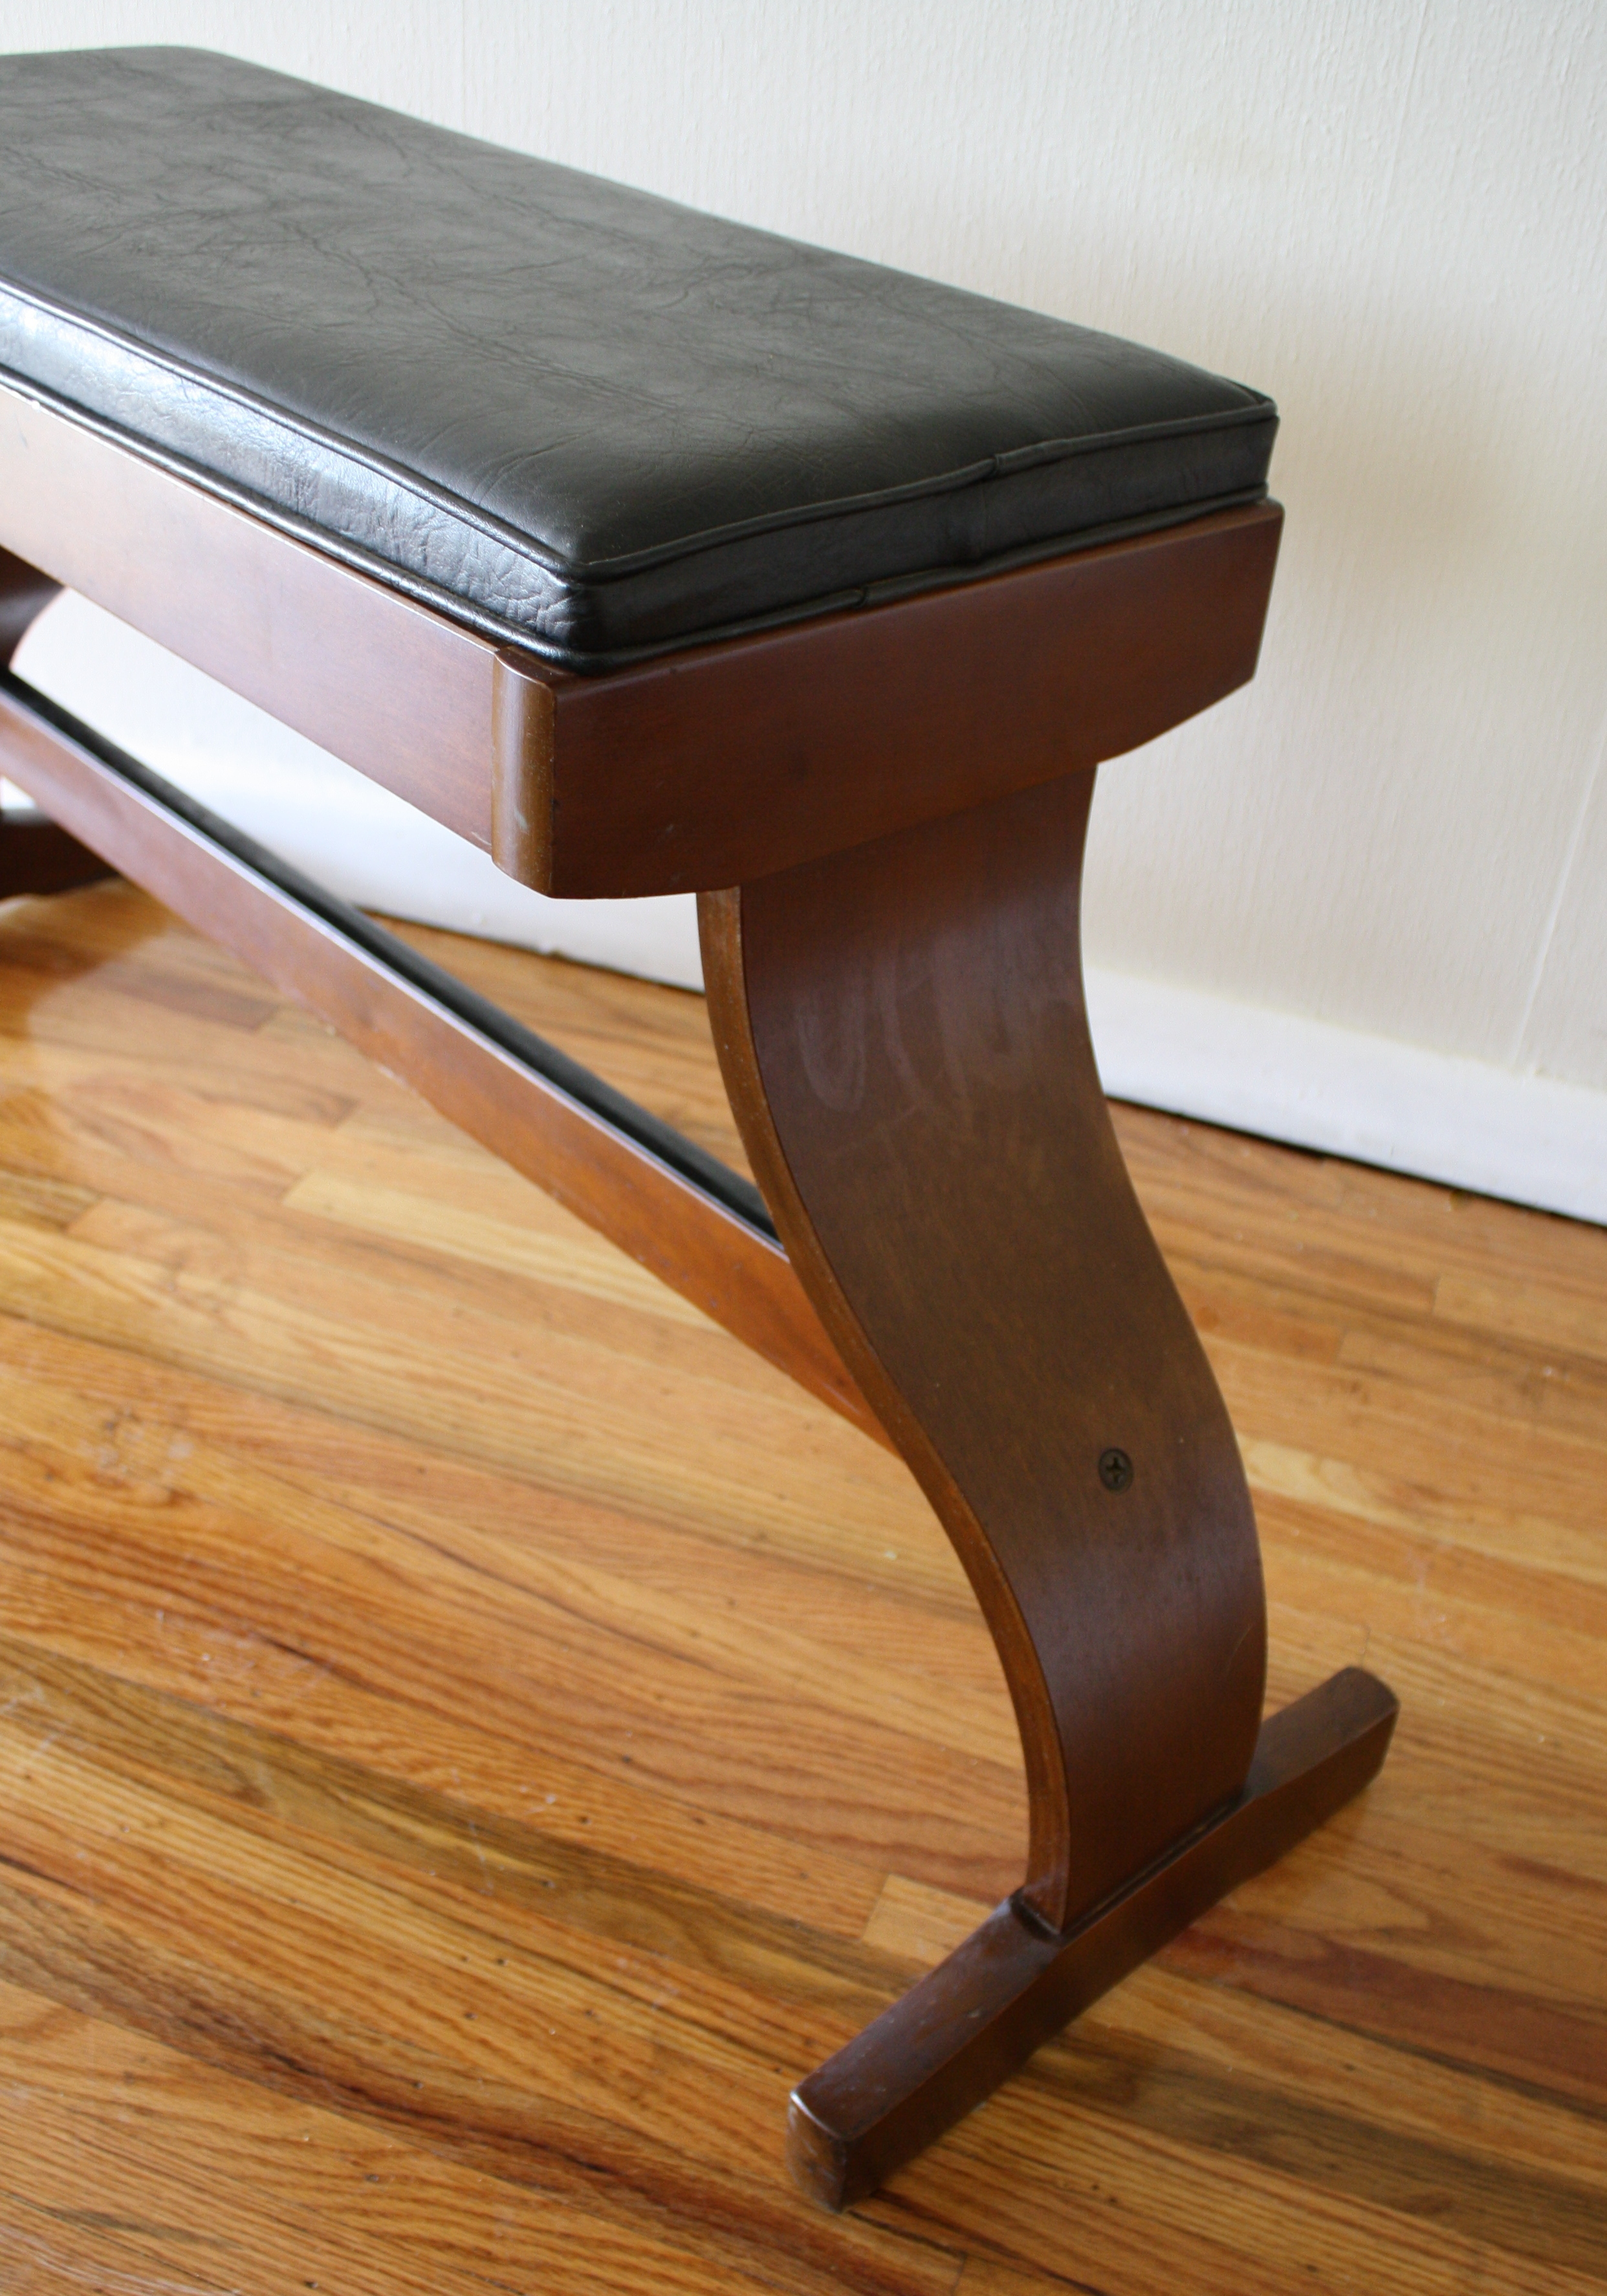 Antique piano chair - Antique Piano Chair